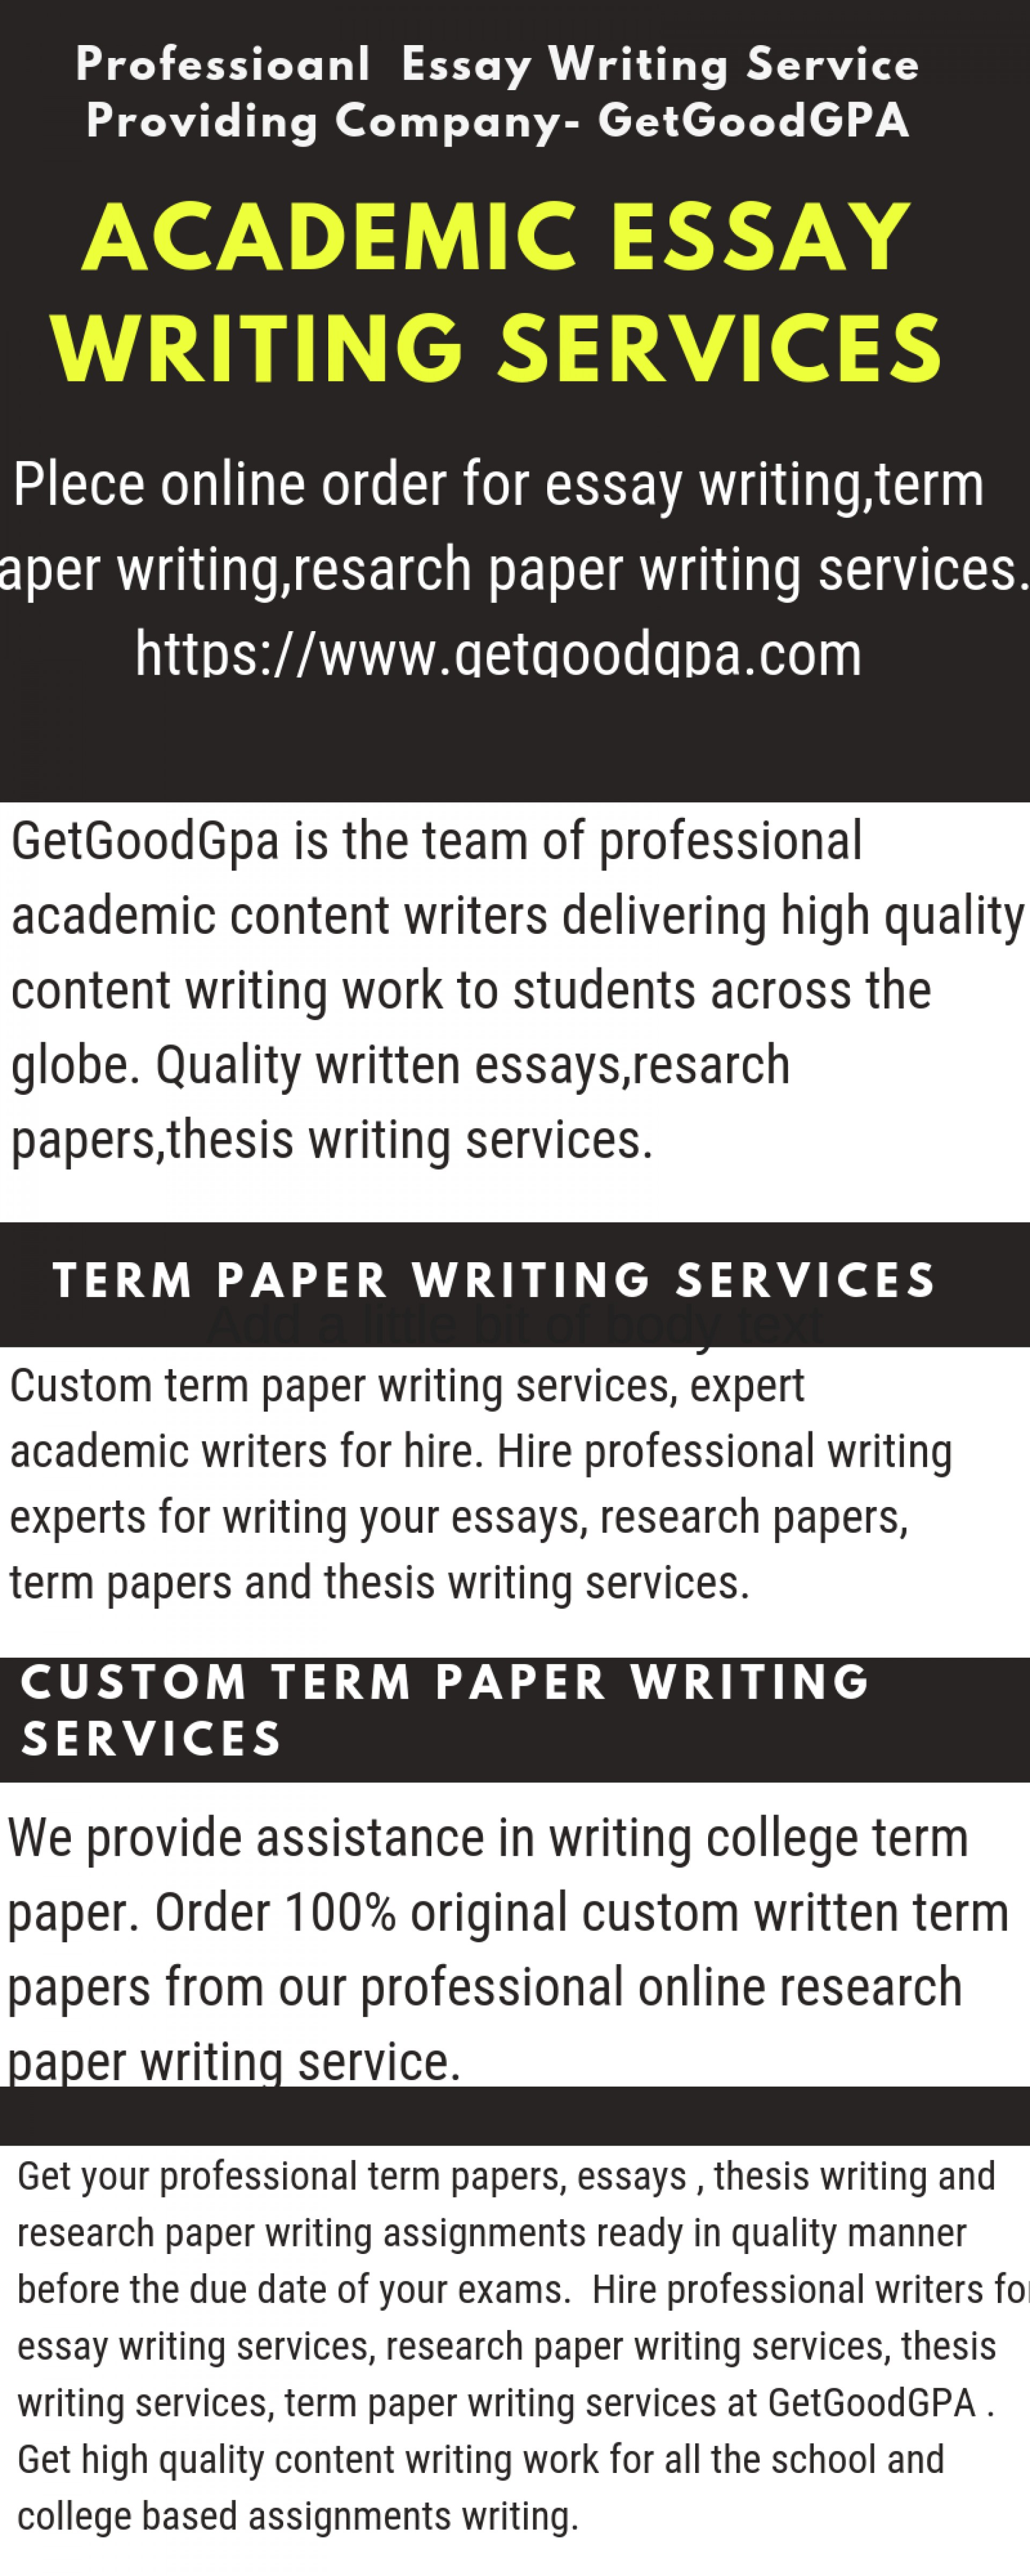 003 Research Paper Custom Term Writing Magnificent Service Services 1920